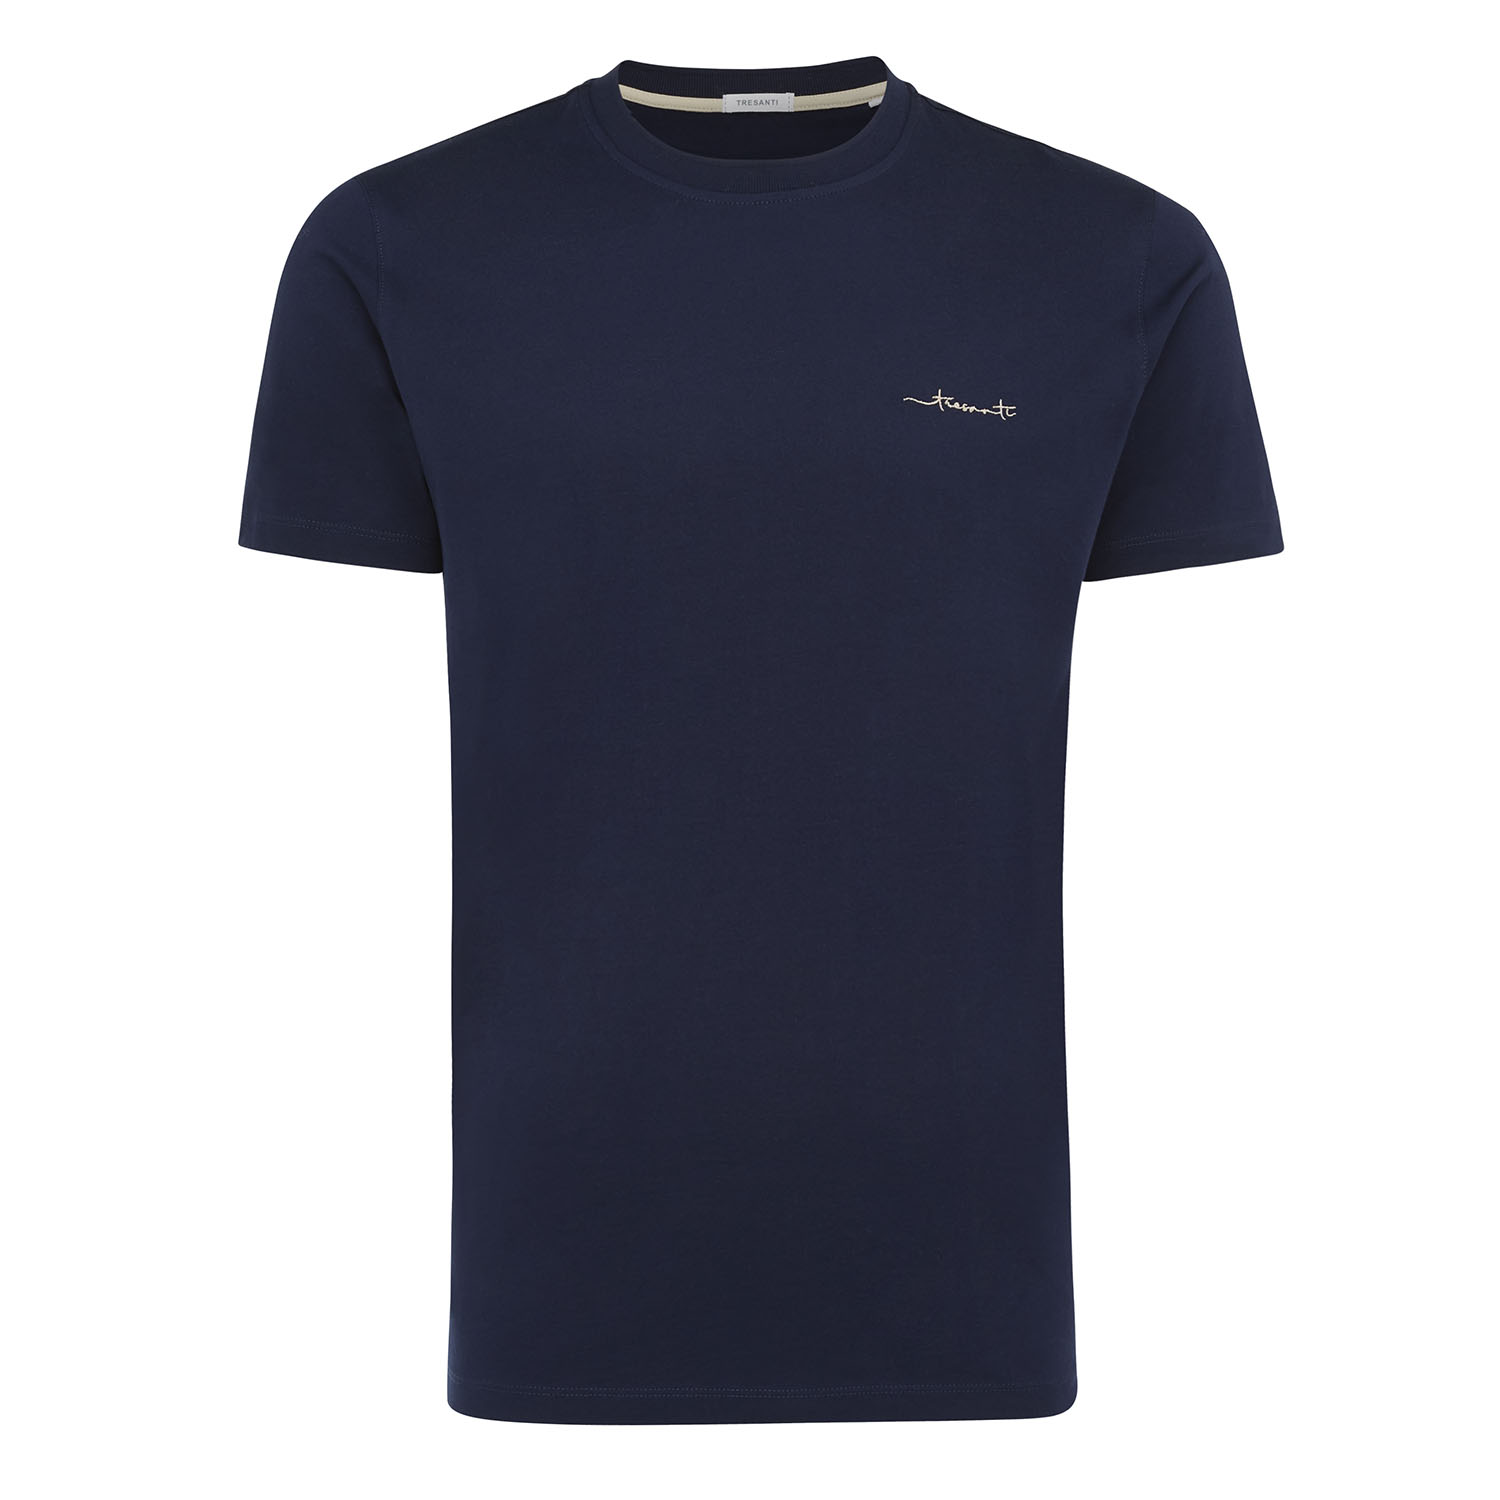 Mauro | T-shirt TRESANTI embroidery navy